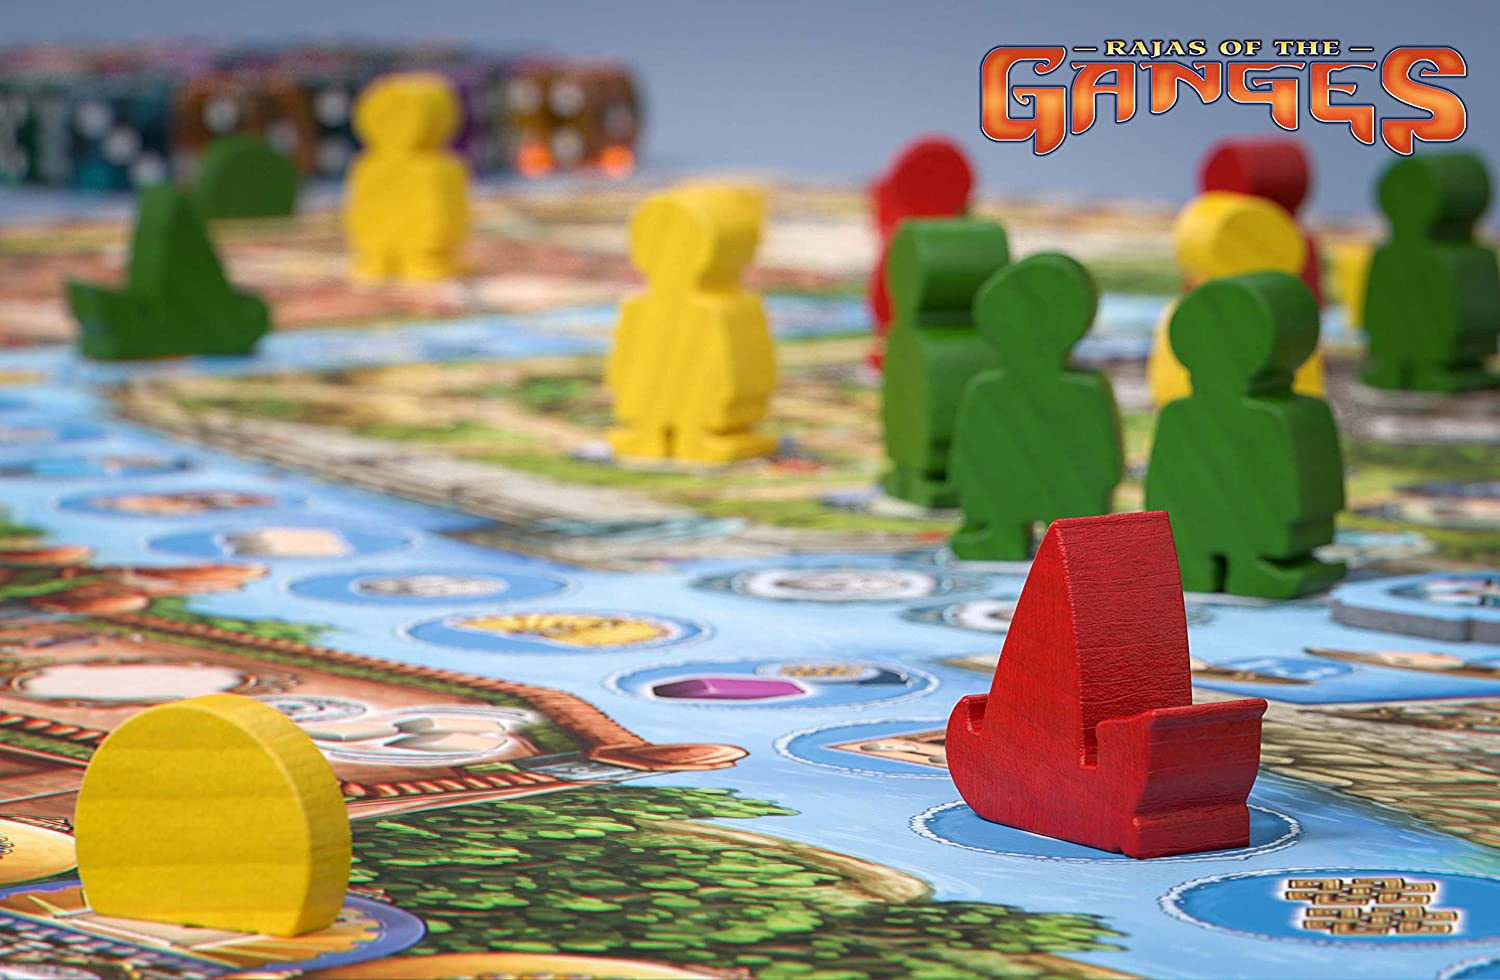 HUCH! -Rajas of The Ganges Modelo 879783: Brand, Inka, Brand, Markus: Amazon.es: Juguetes y juegos